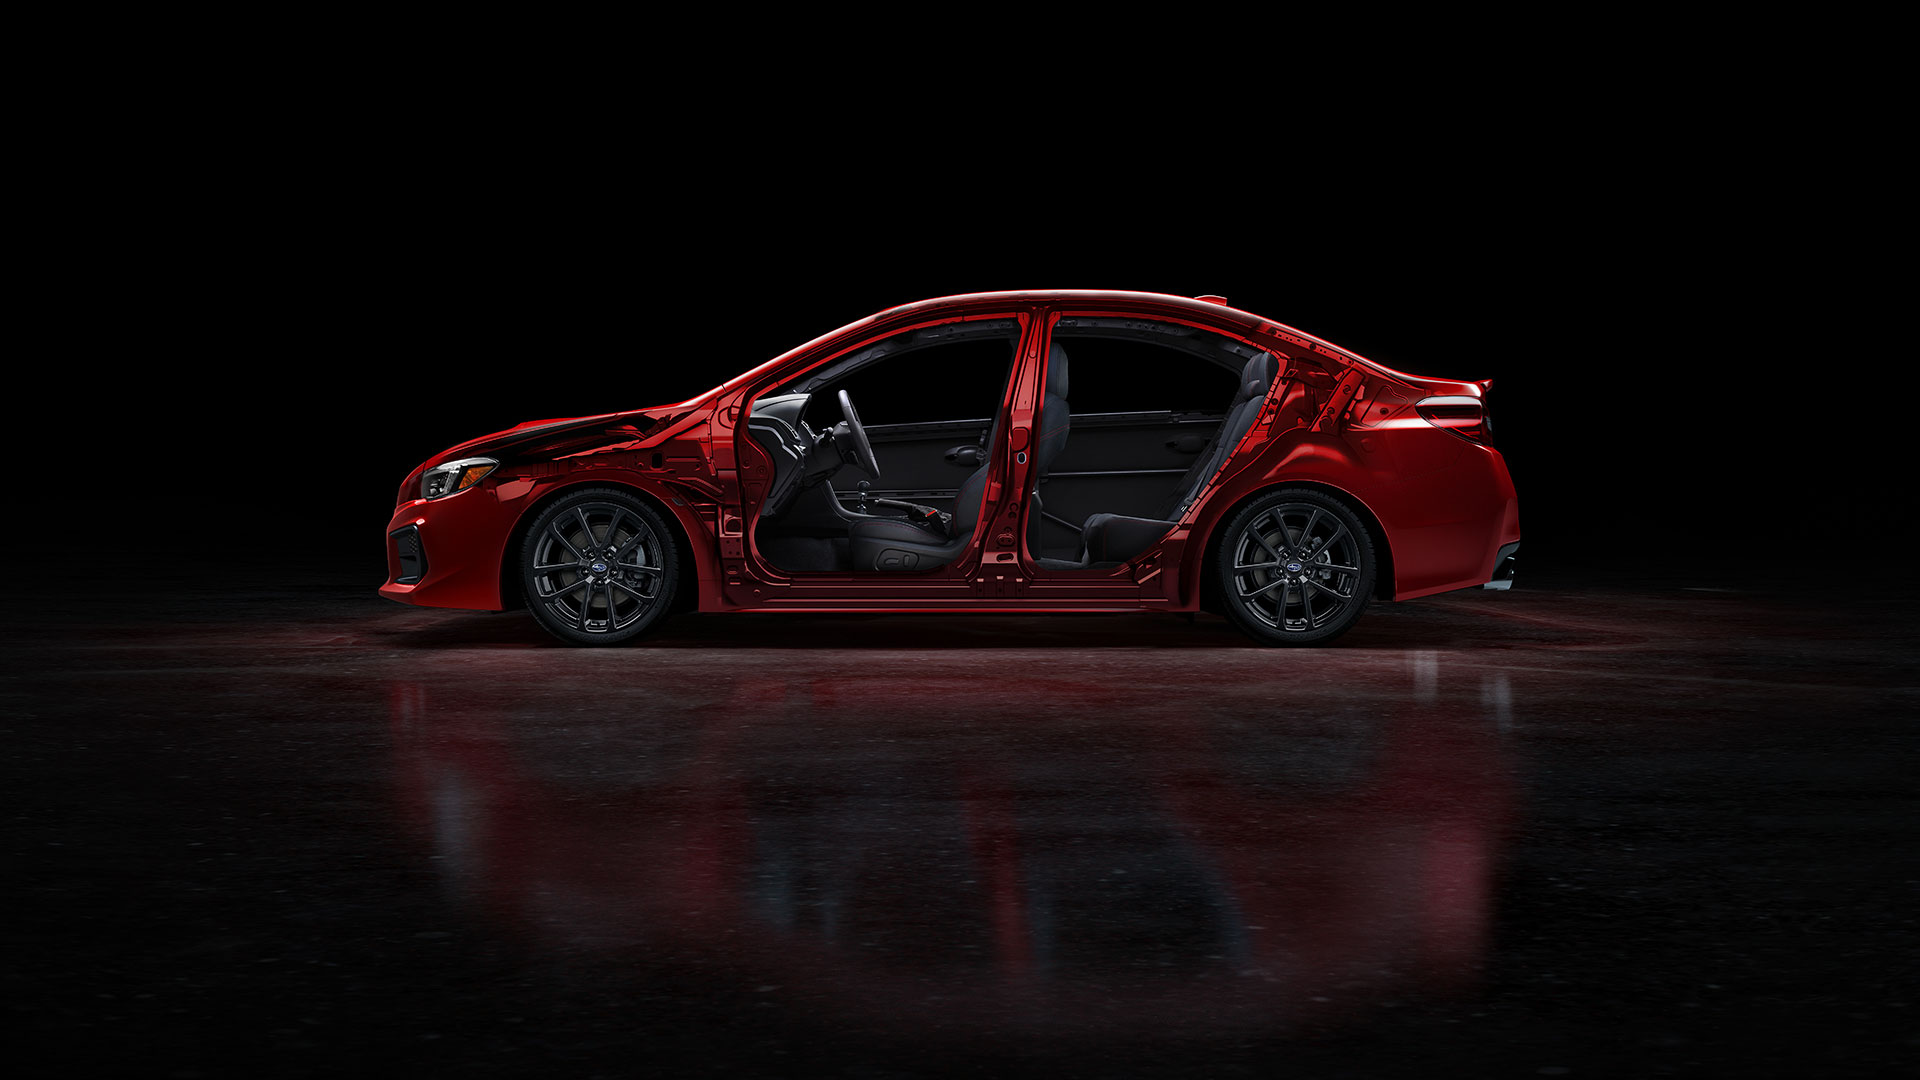 Our Ring-shaped Reinforcement Frame is exceptionally strong for maximum resistance to impact energy, while its unique configuration helps divert that energy away from occupants. Also, front, front-side and side-curtain airbags<sup>3</sup>—standard on every WRX and WRX STI—surround outboard occupants in the event of a crash to further help prevent injury.